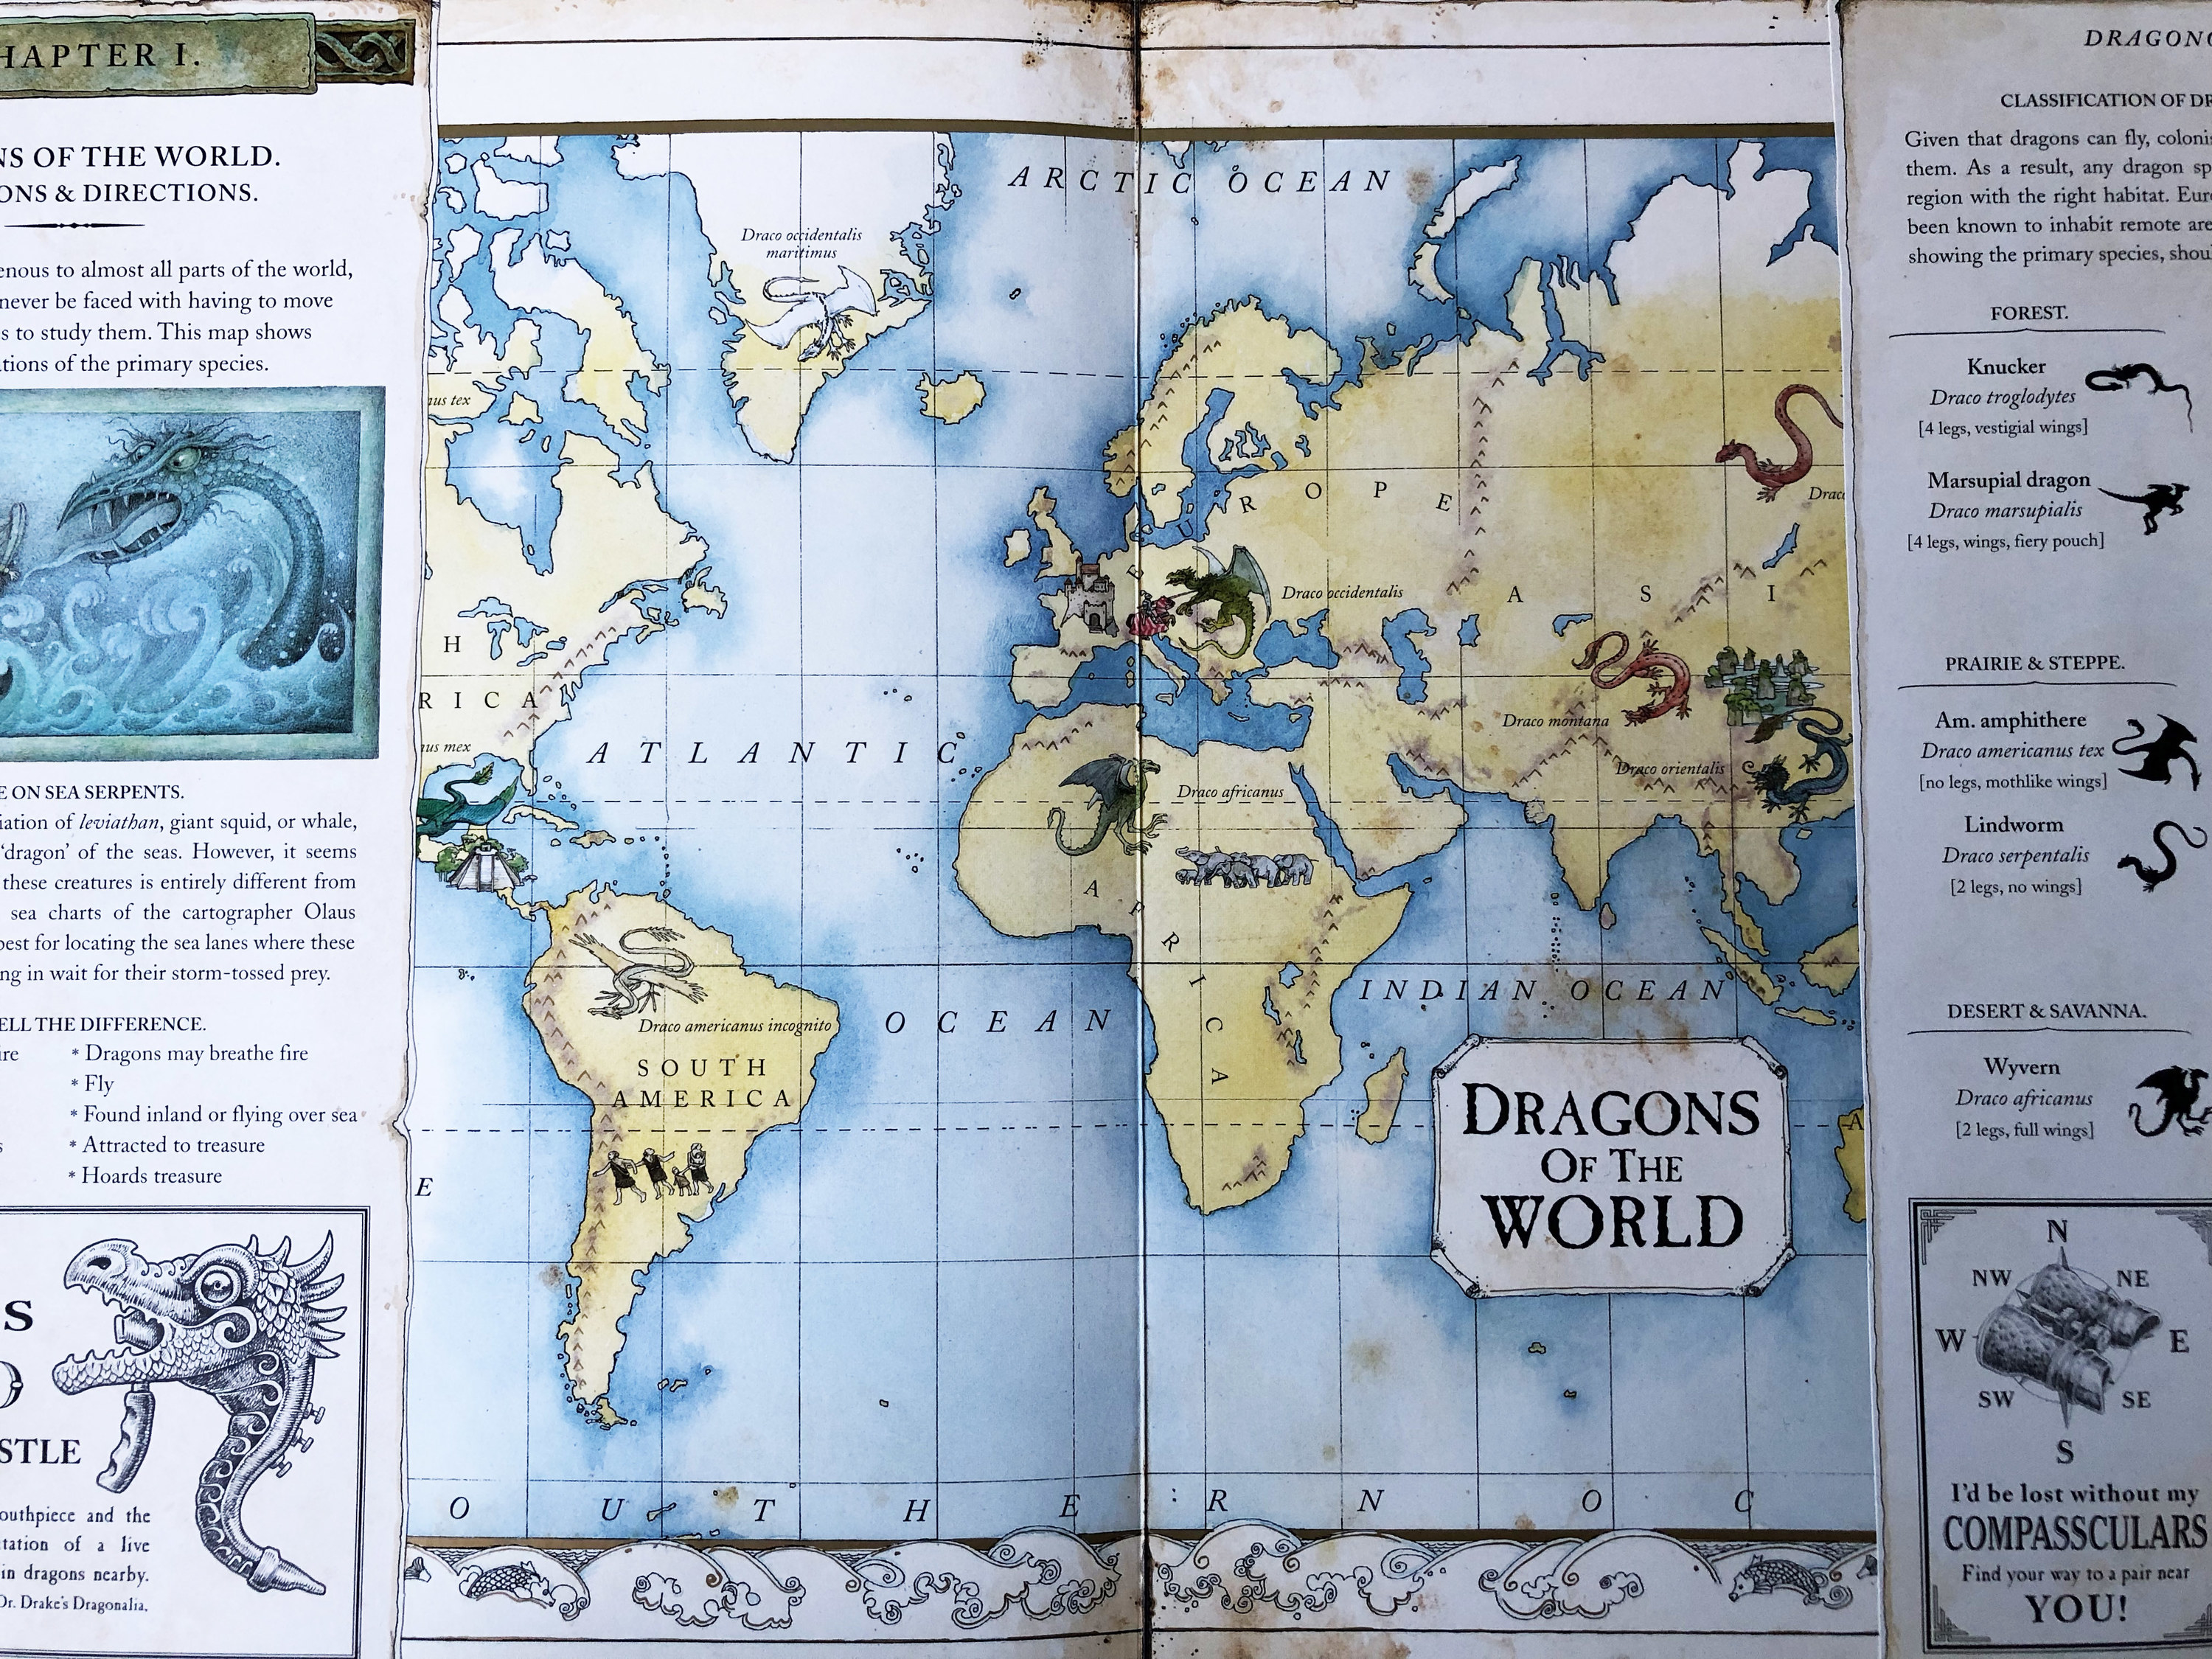 A page from Dragonology showing a map where different dragons are located